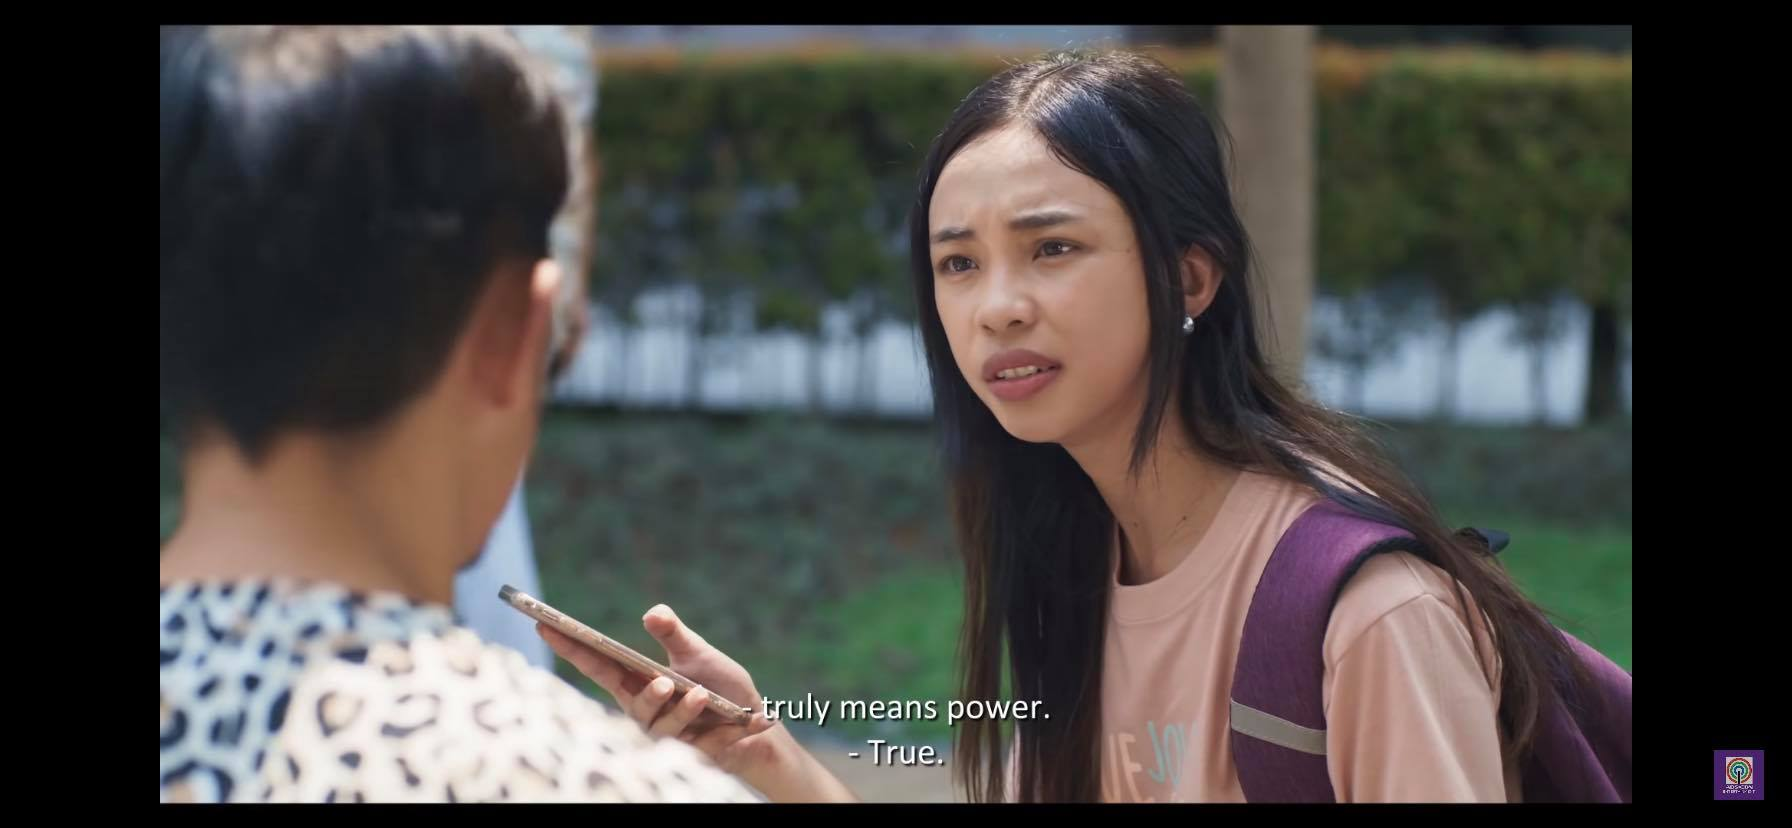 Maymay Entrata in Lurker episode 3